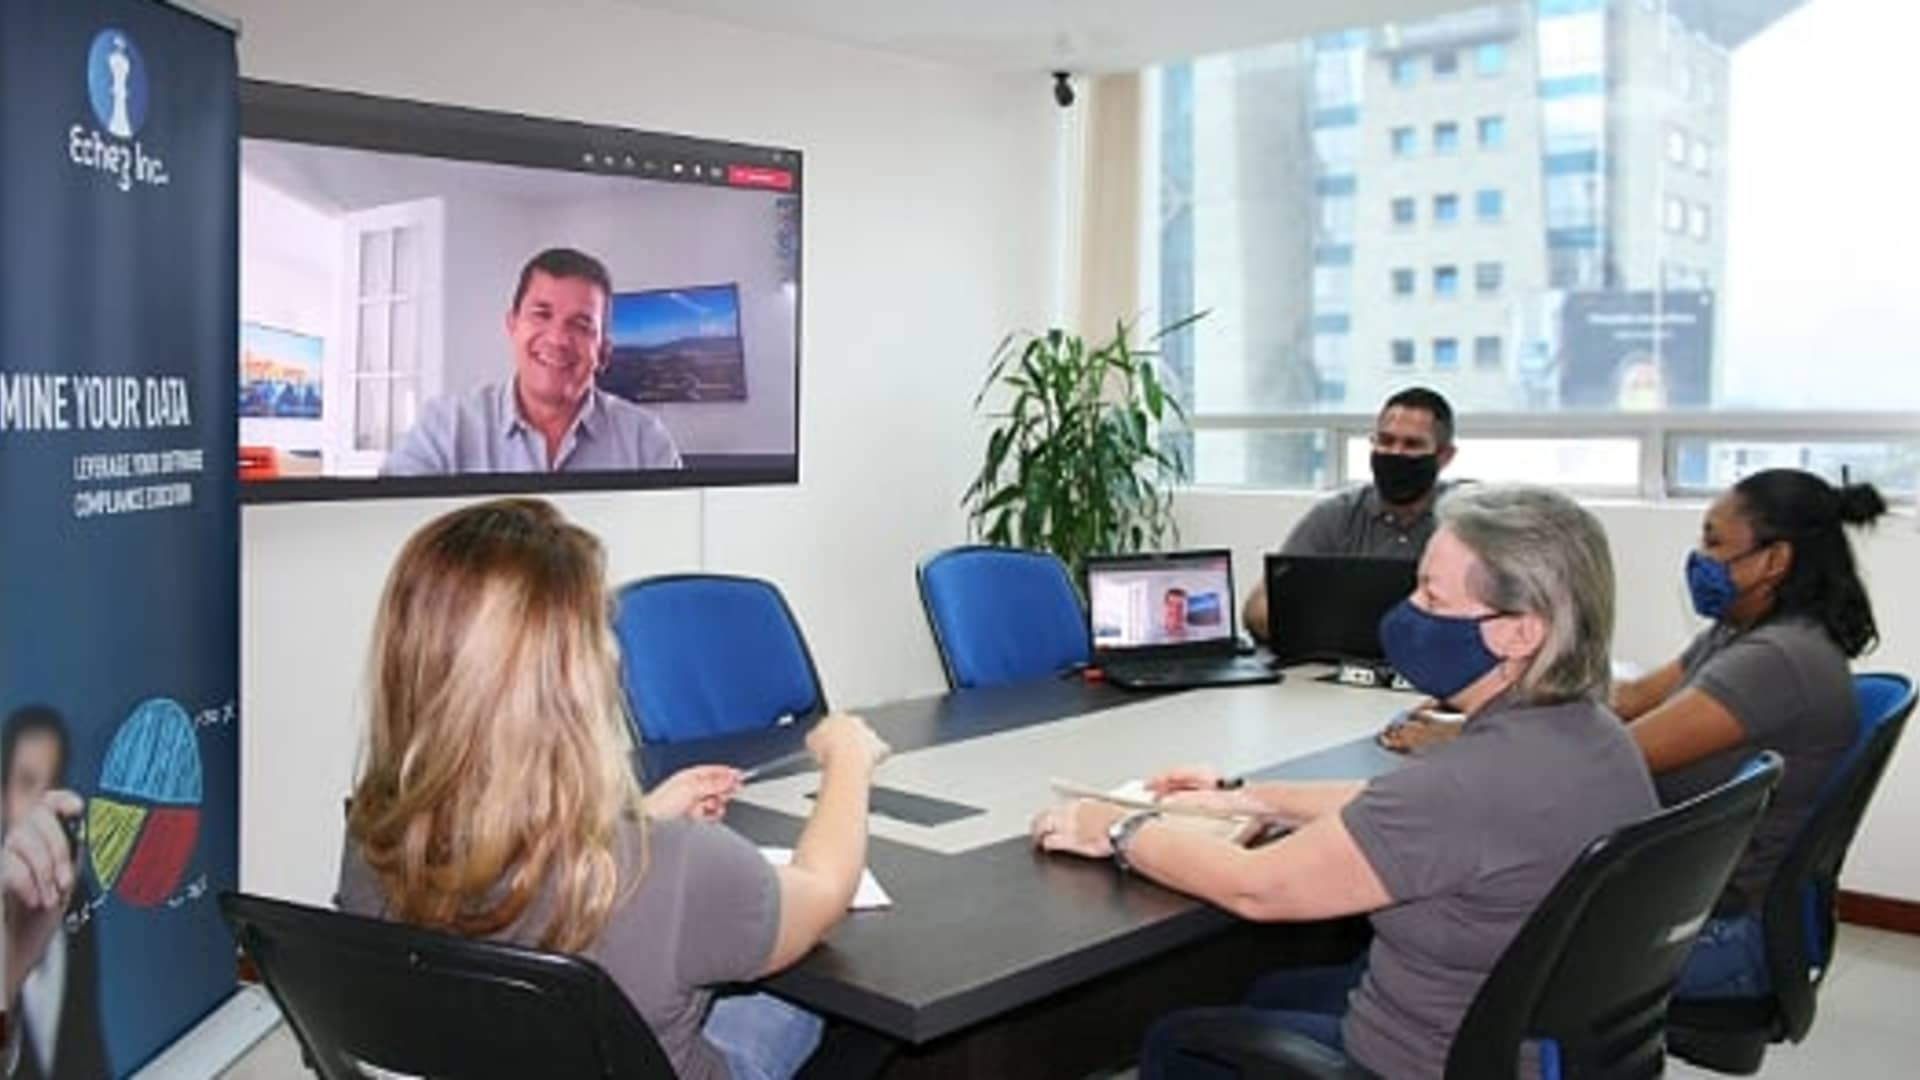 Edwin Sanchez, Echez Group CEO and member of the Latino Business Action Network meets with team members remotely.